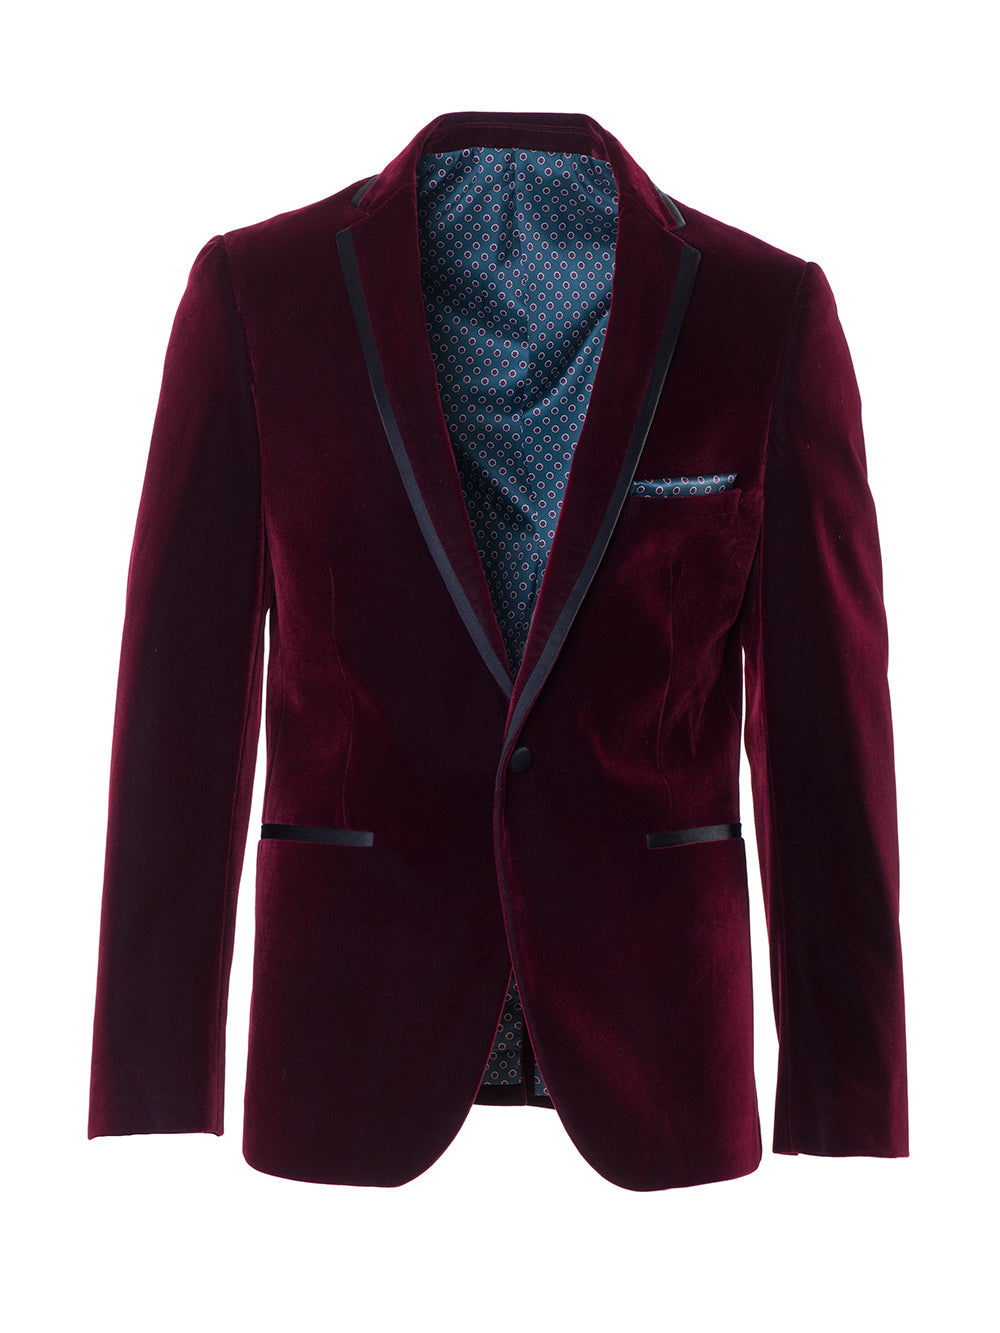 Osborne Notch Dinner Jacket - Maroon Velvet